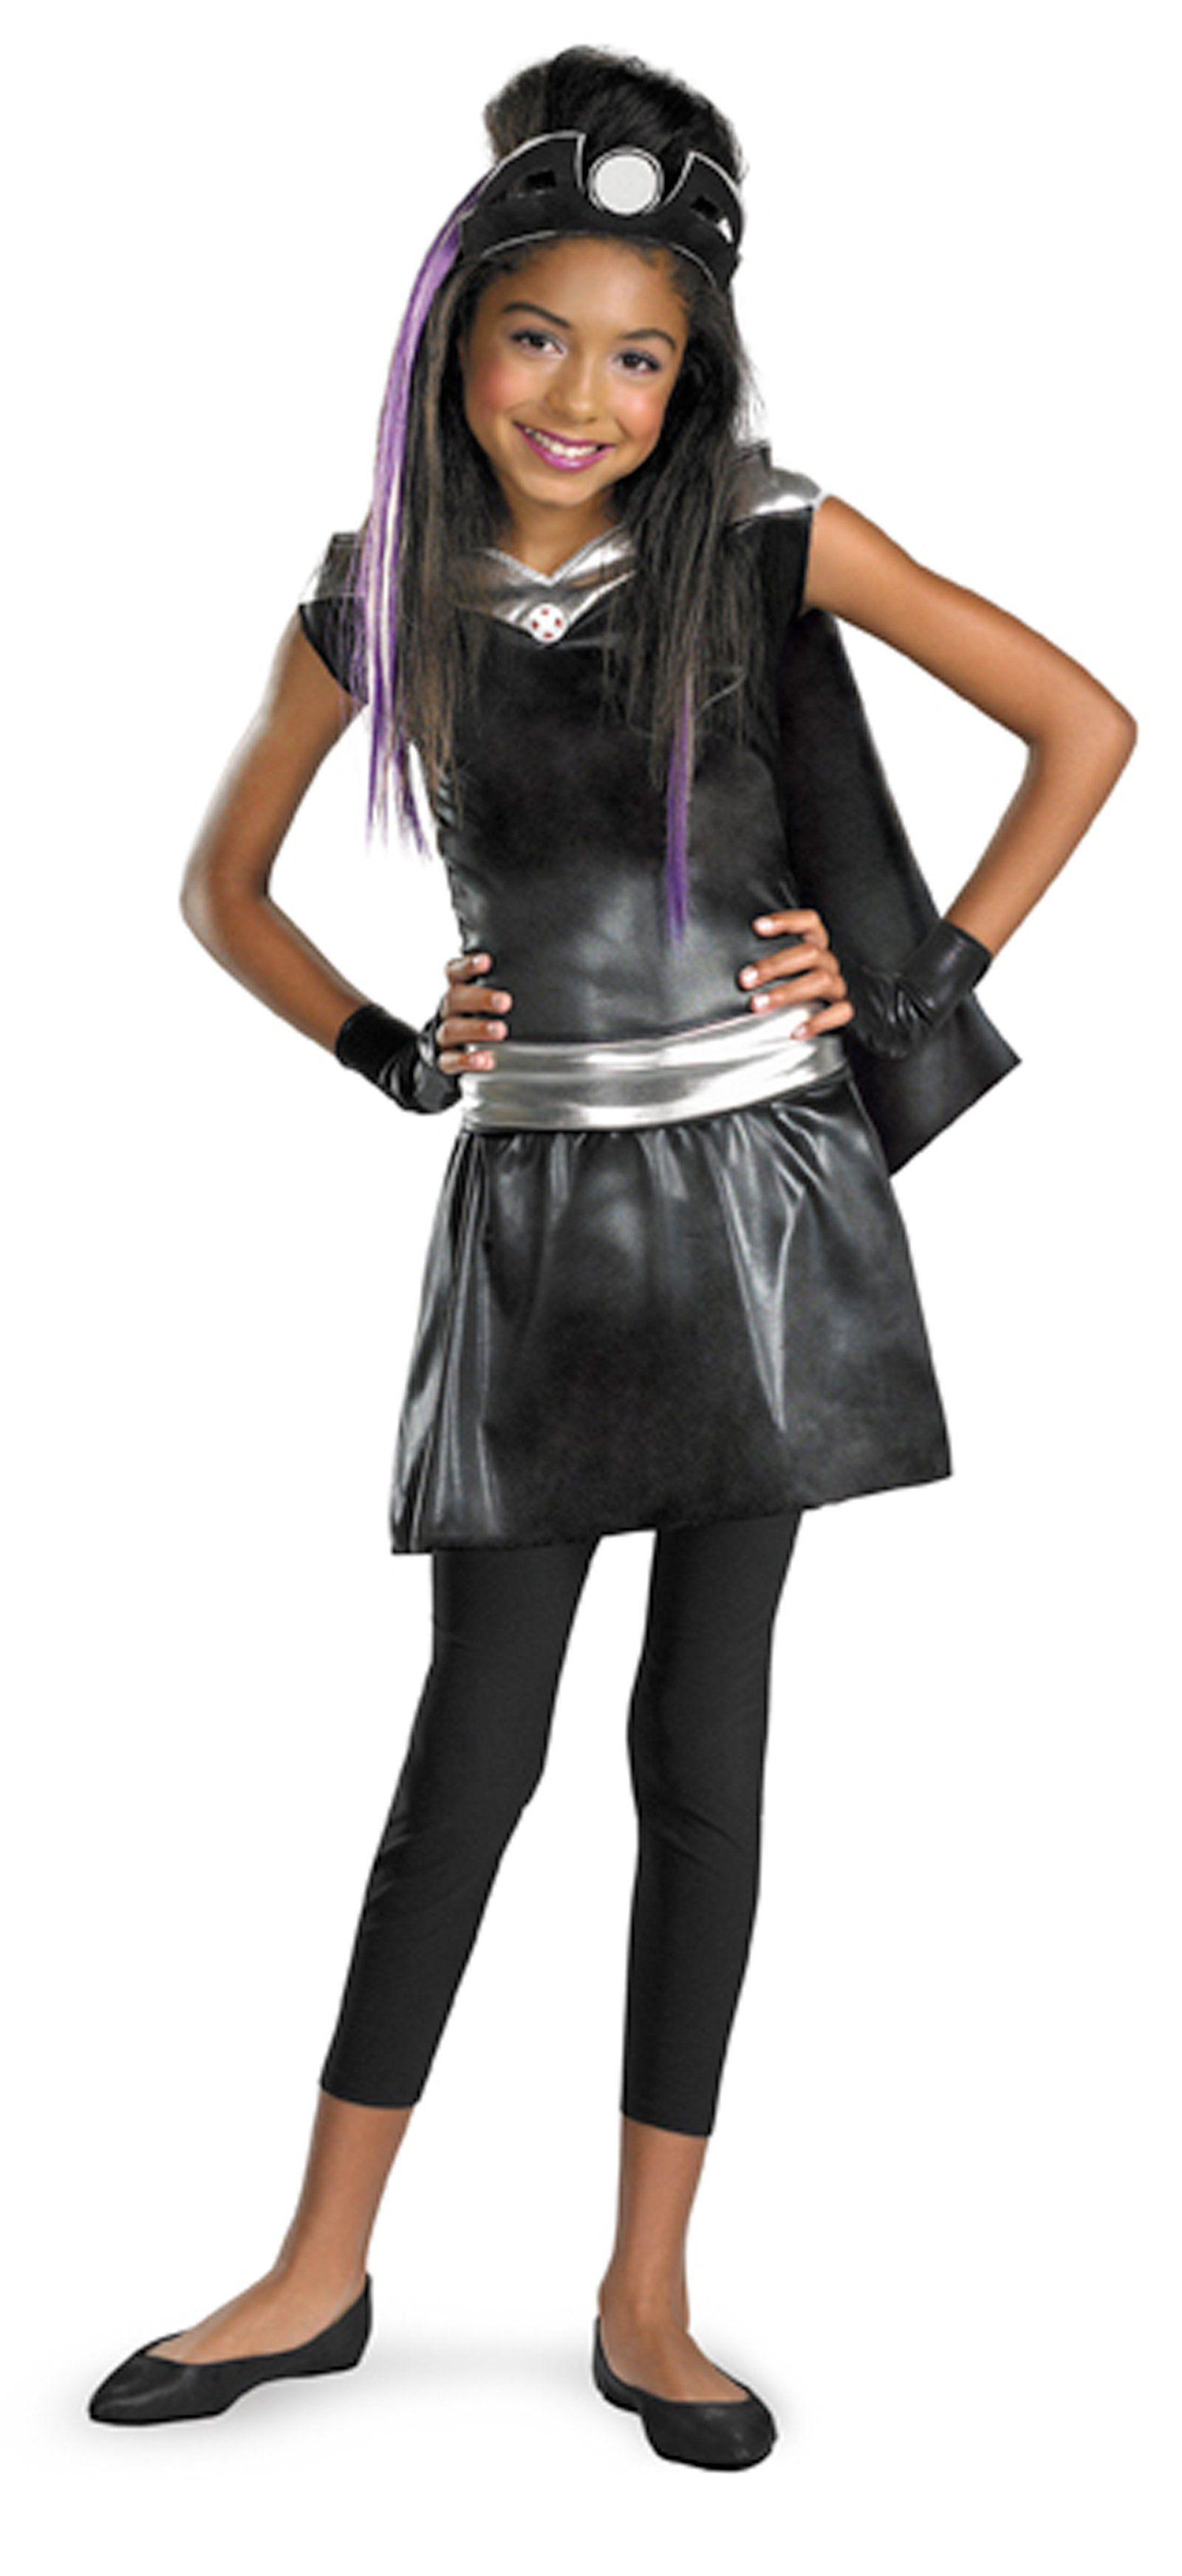 XMen Storm Child Costume,39.99 Storm costume, Marvel